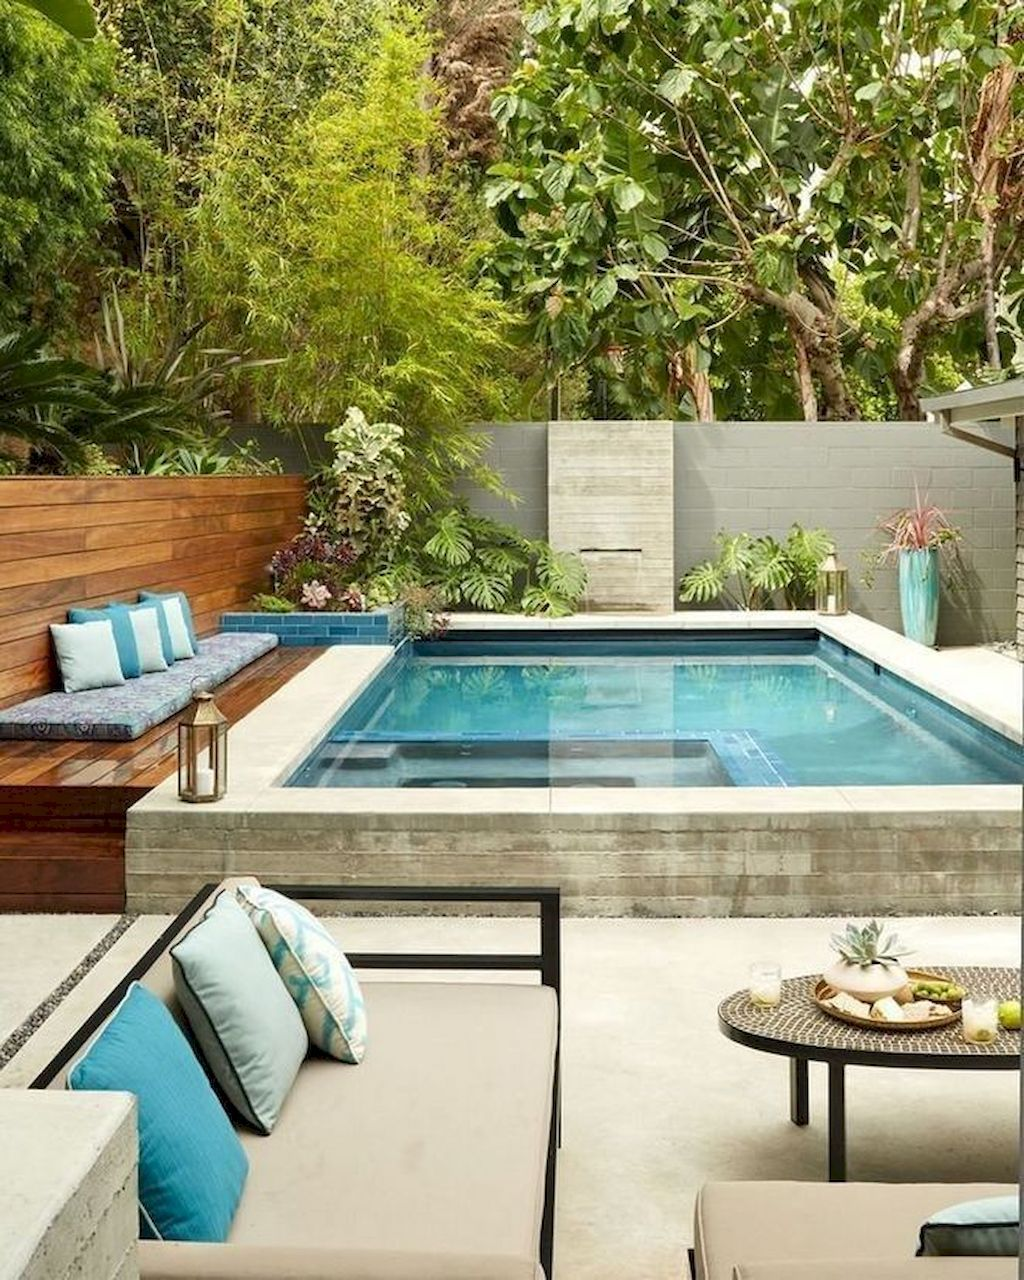 Magnificent Expertise The Final Luxurious With A Swimming Pool Small Pool Design Backyard Pool Designs Swimming Pools Backyard